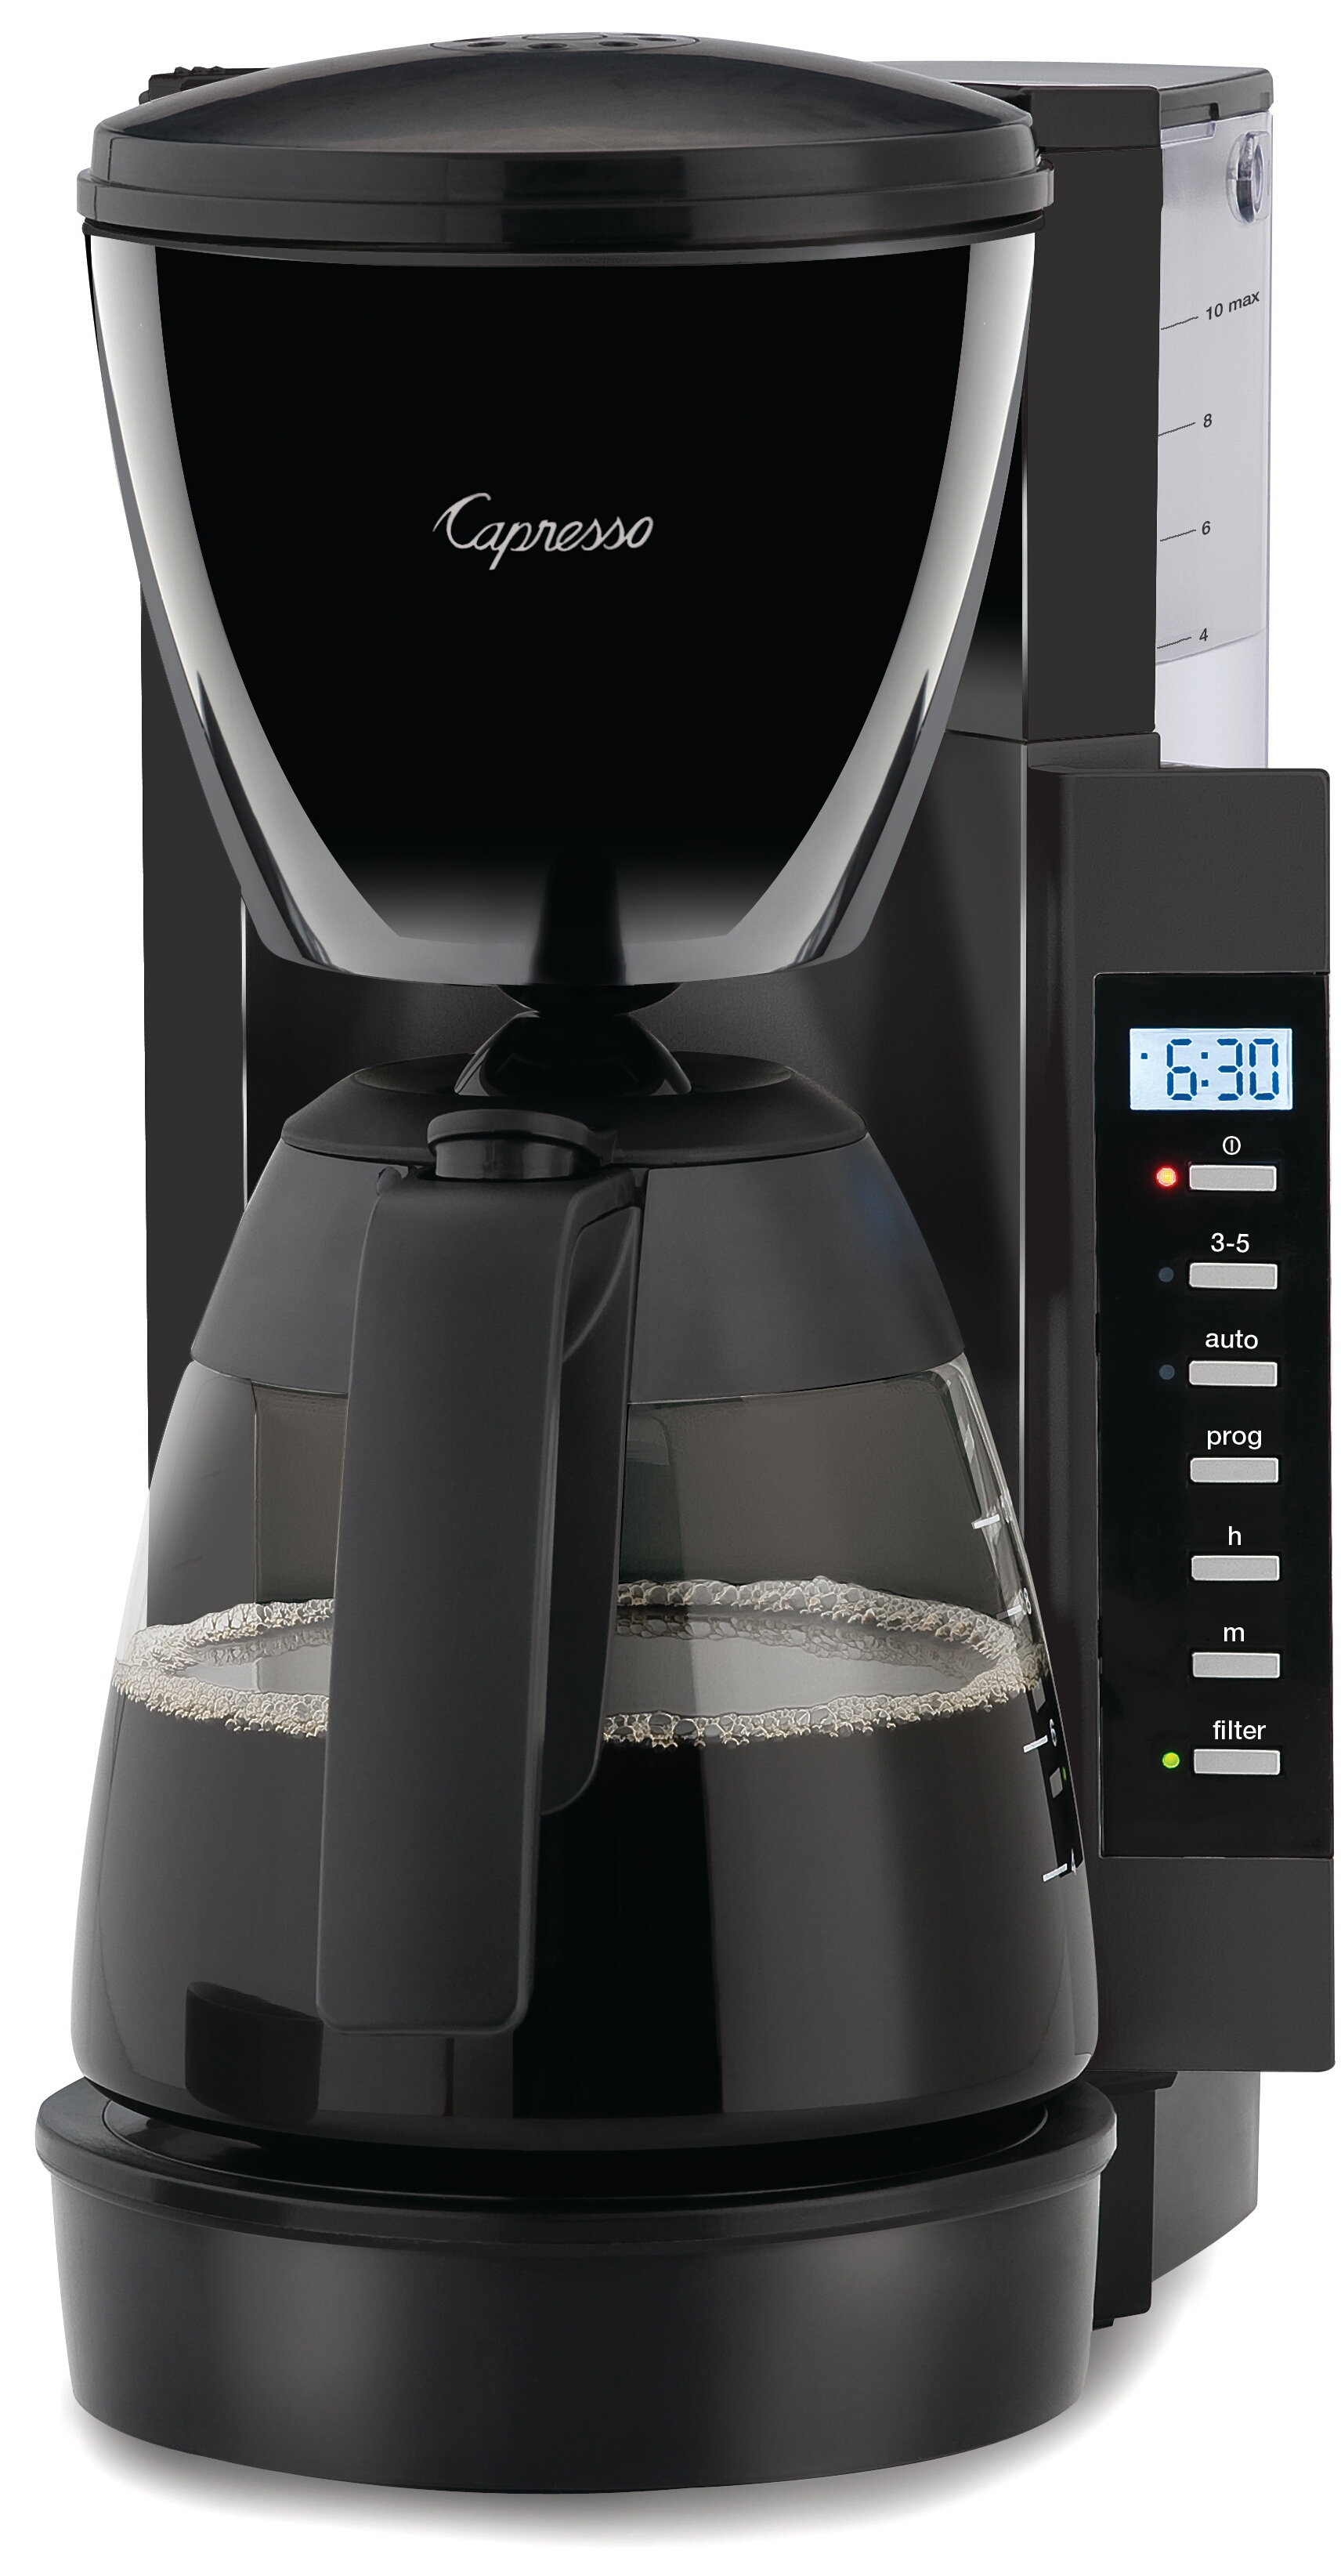 Capresso CM200 Space Saving Programmable Coffee Maker, 10 Cup